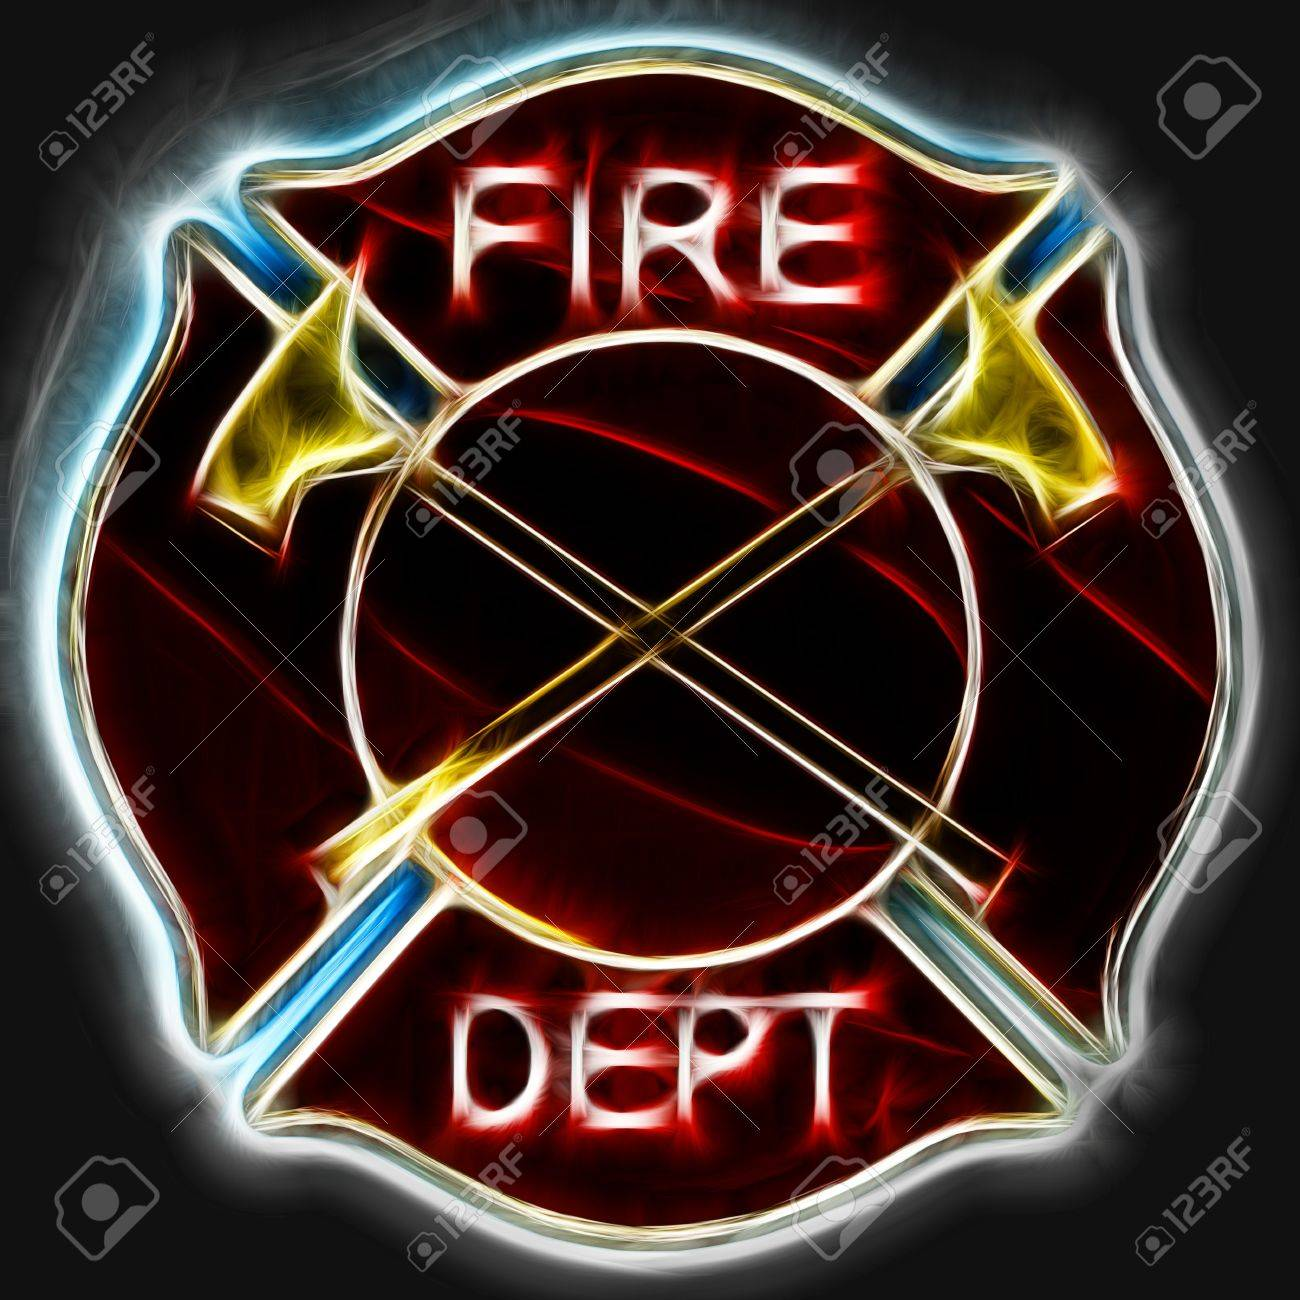 Abstract fractal fire department maltese cross badge or symbol abstract fractal fire department maltese cross badge or symbol with axes stock photo 20940807 biocorpaavc